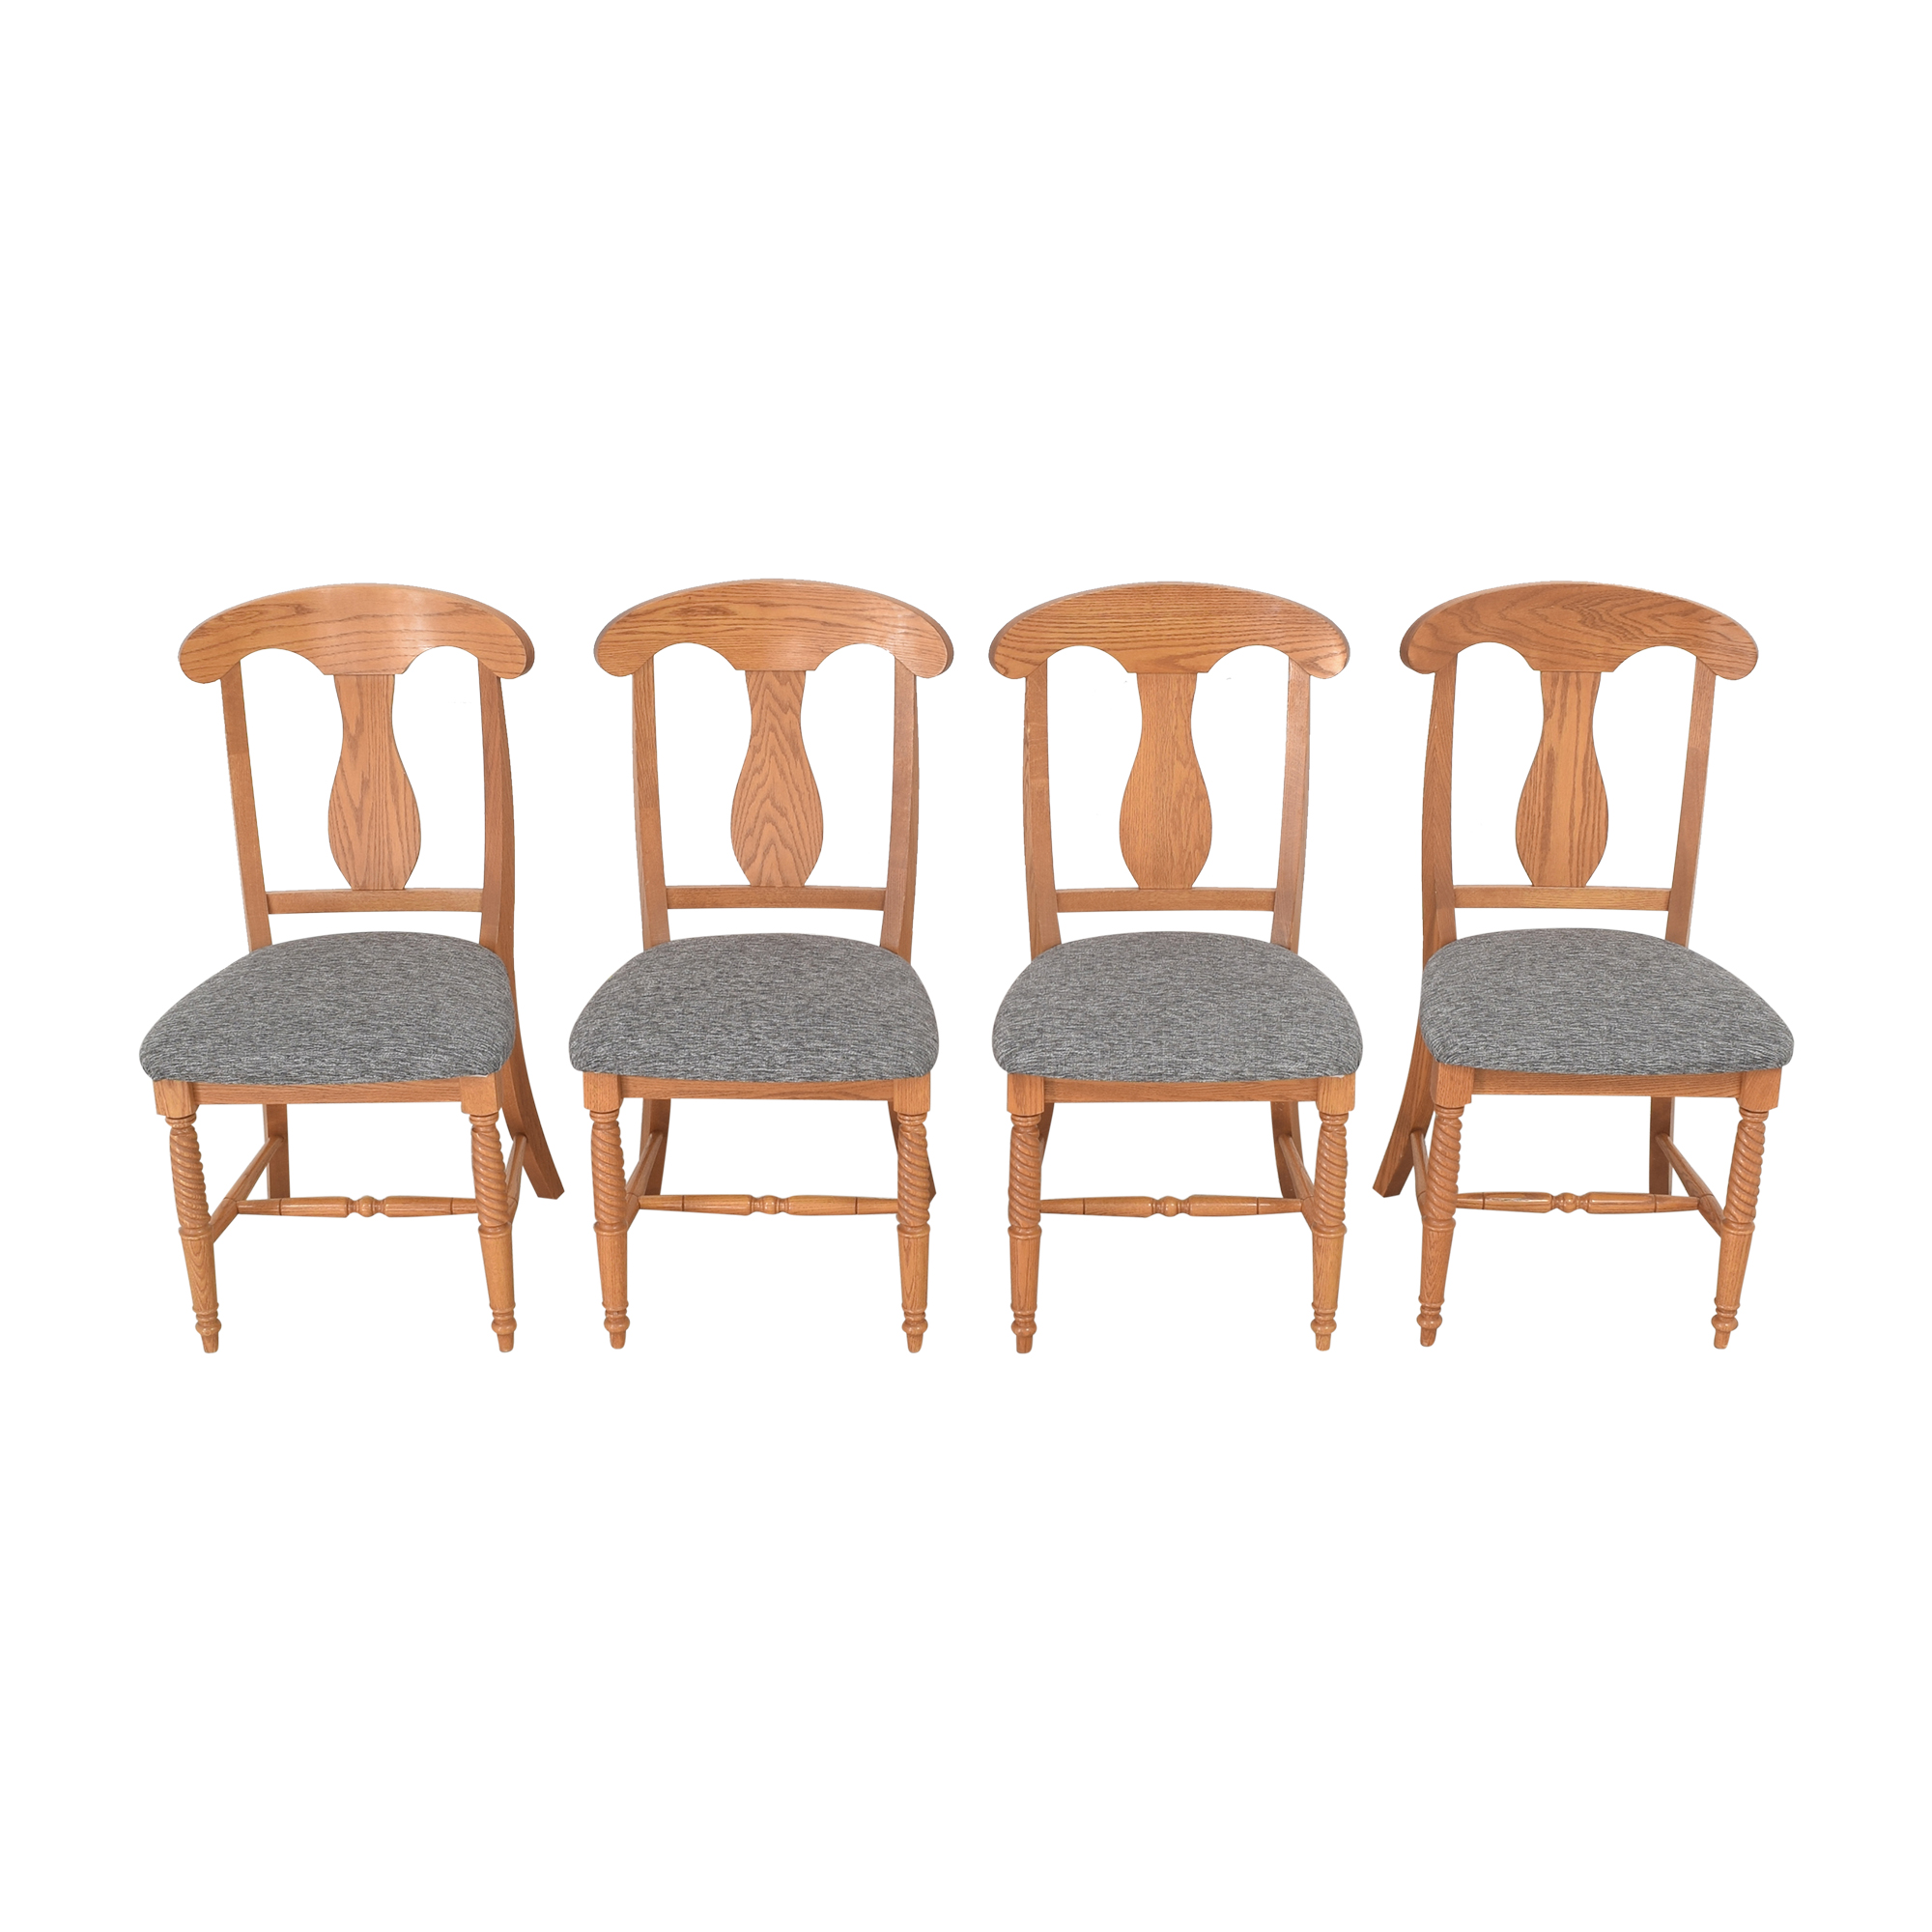 J & H Dinettes J & H Dinettes Upholstered Dining Side Chairs used